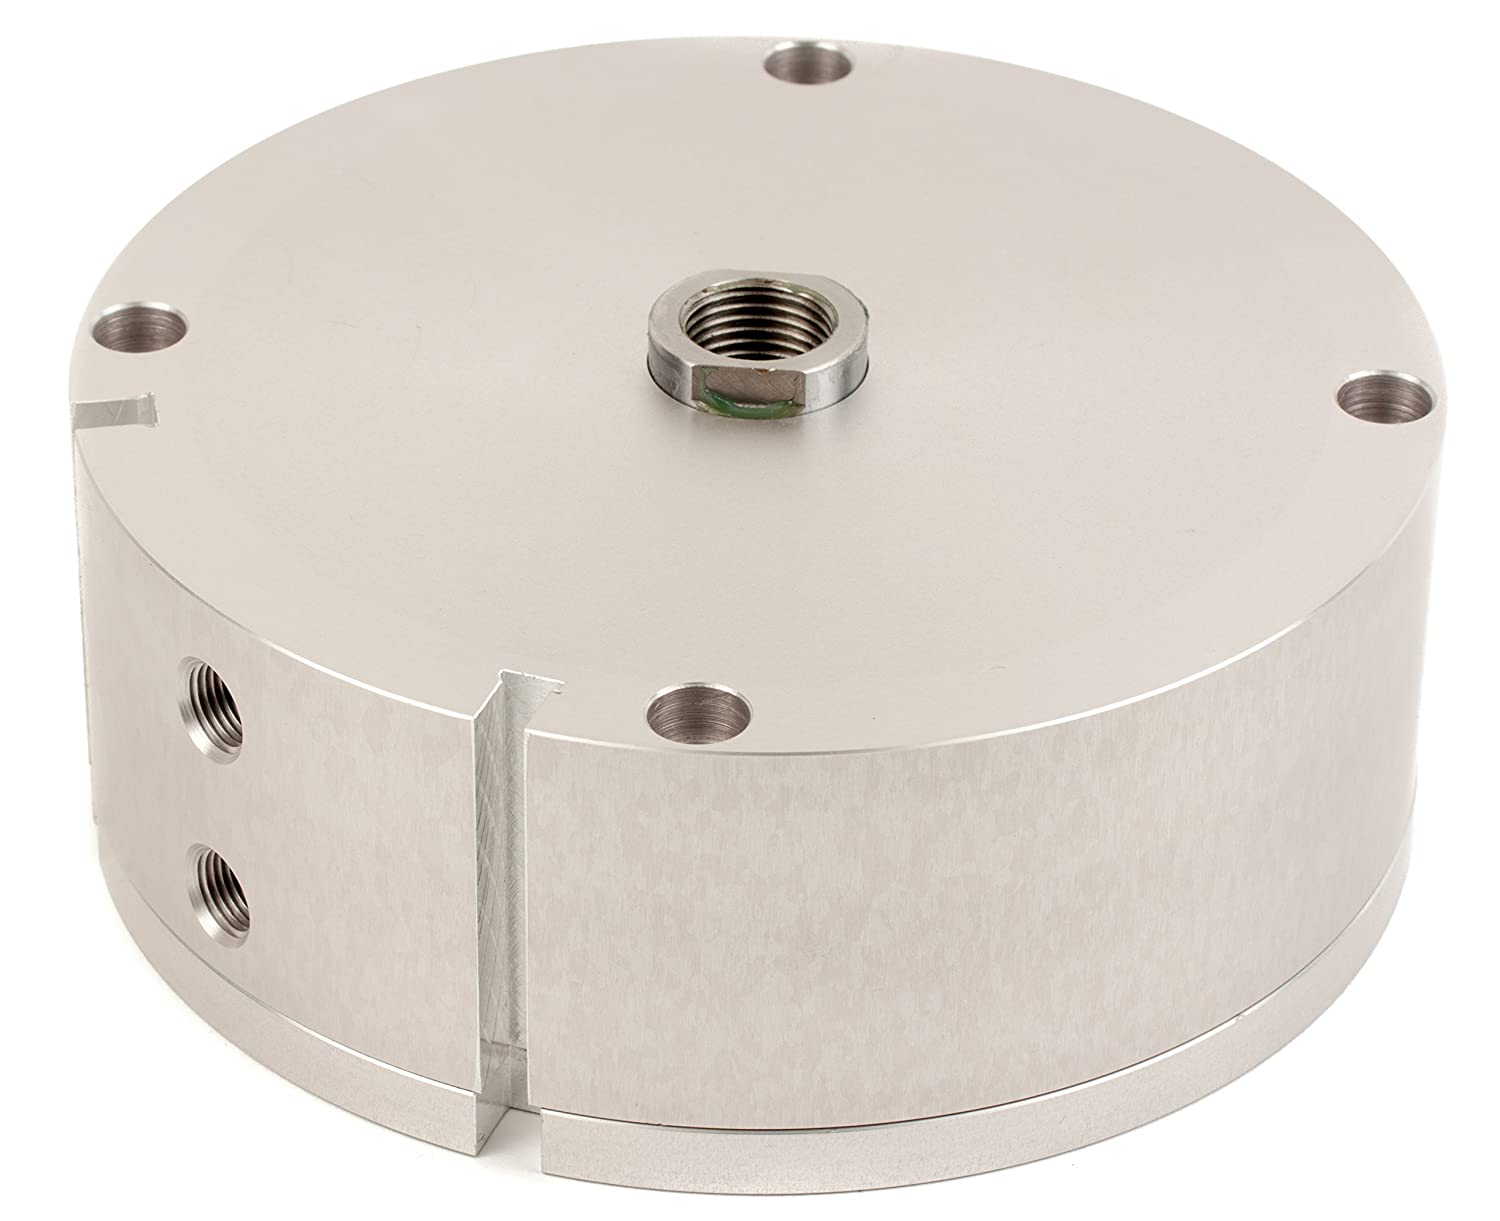 Fabco-Air AA-1221-X-E Original Pancake Cylinder, Double Acting, Maximum Pressure of 250 PSI, Switch Ready with Magnet, 4